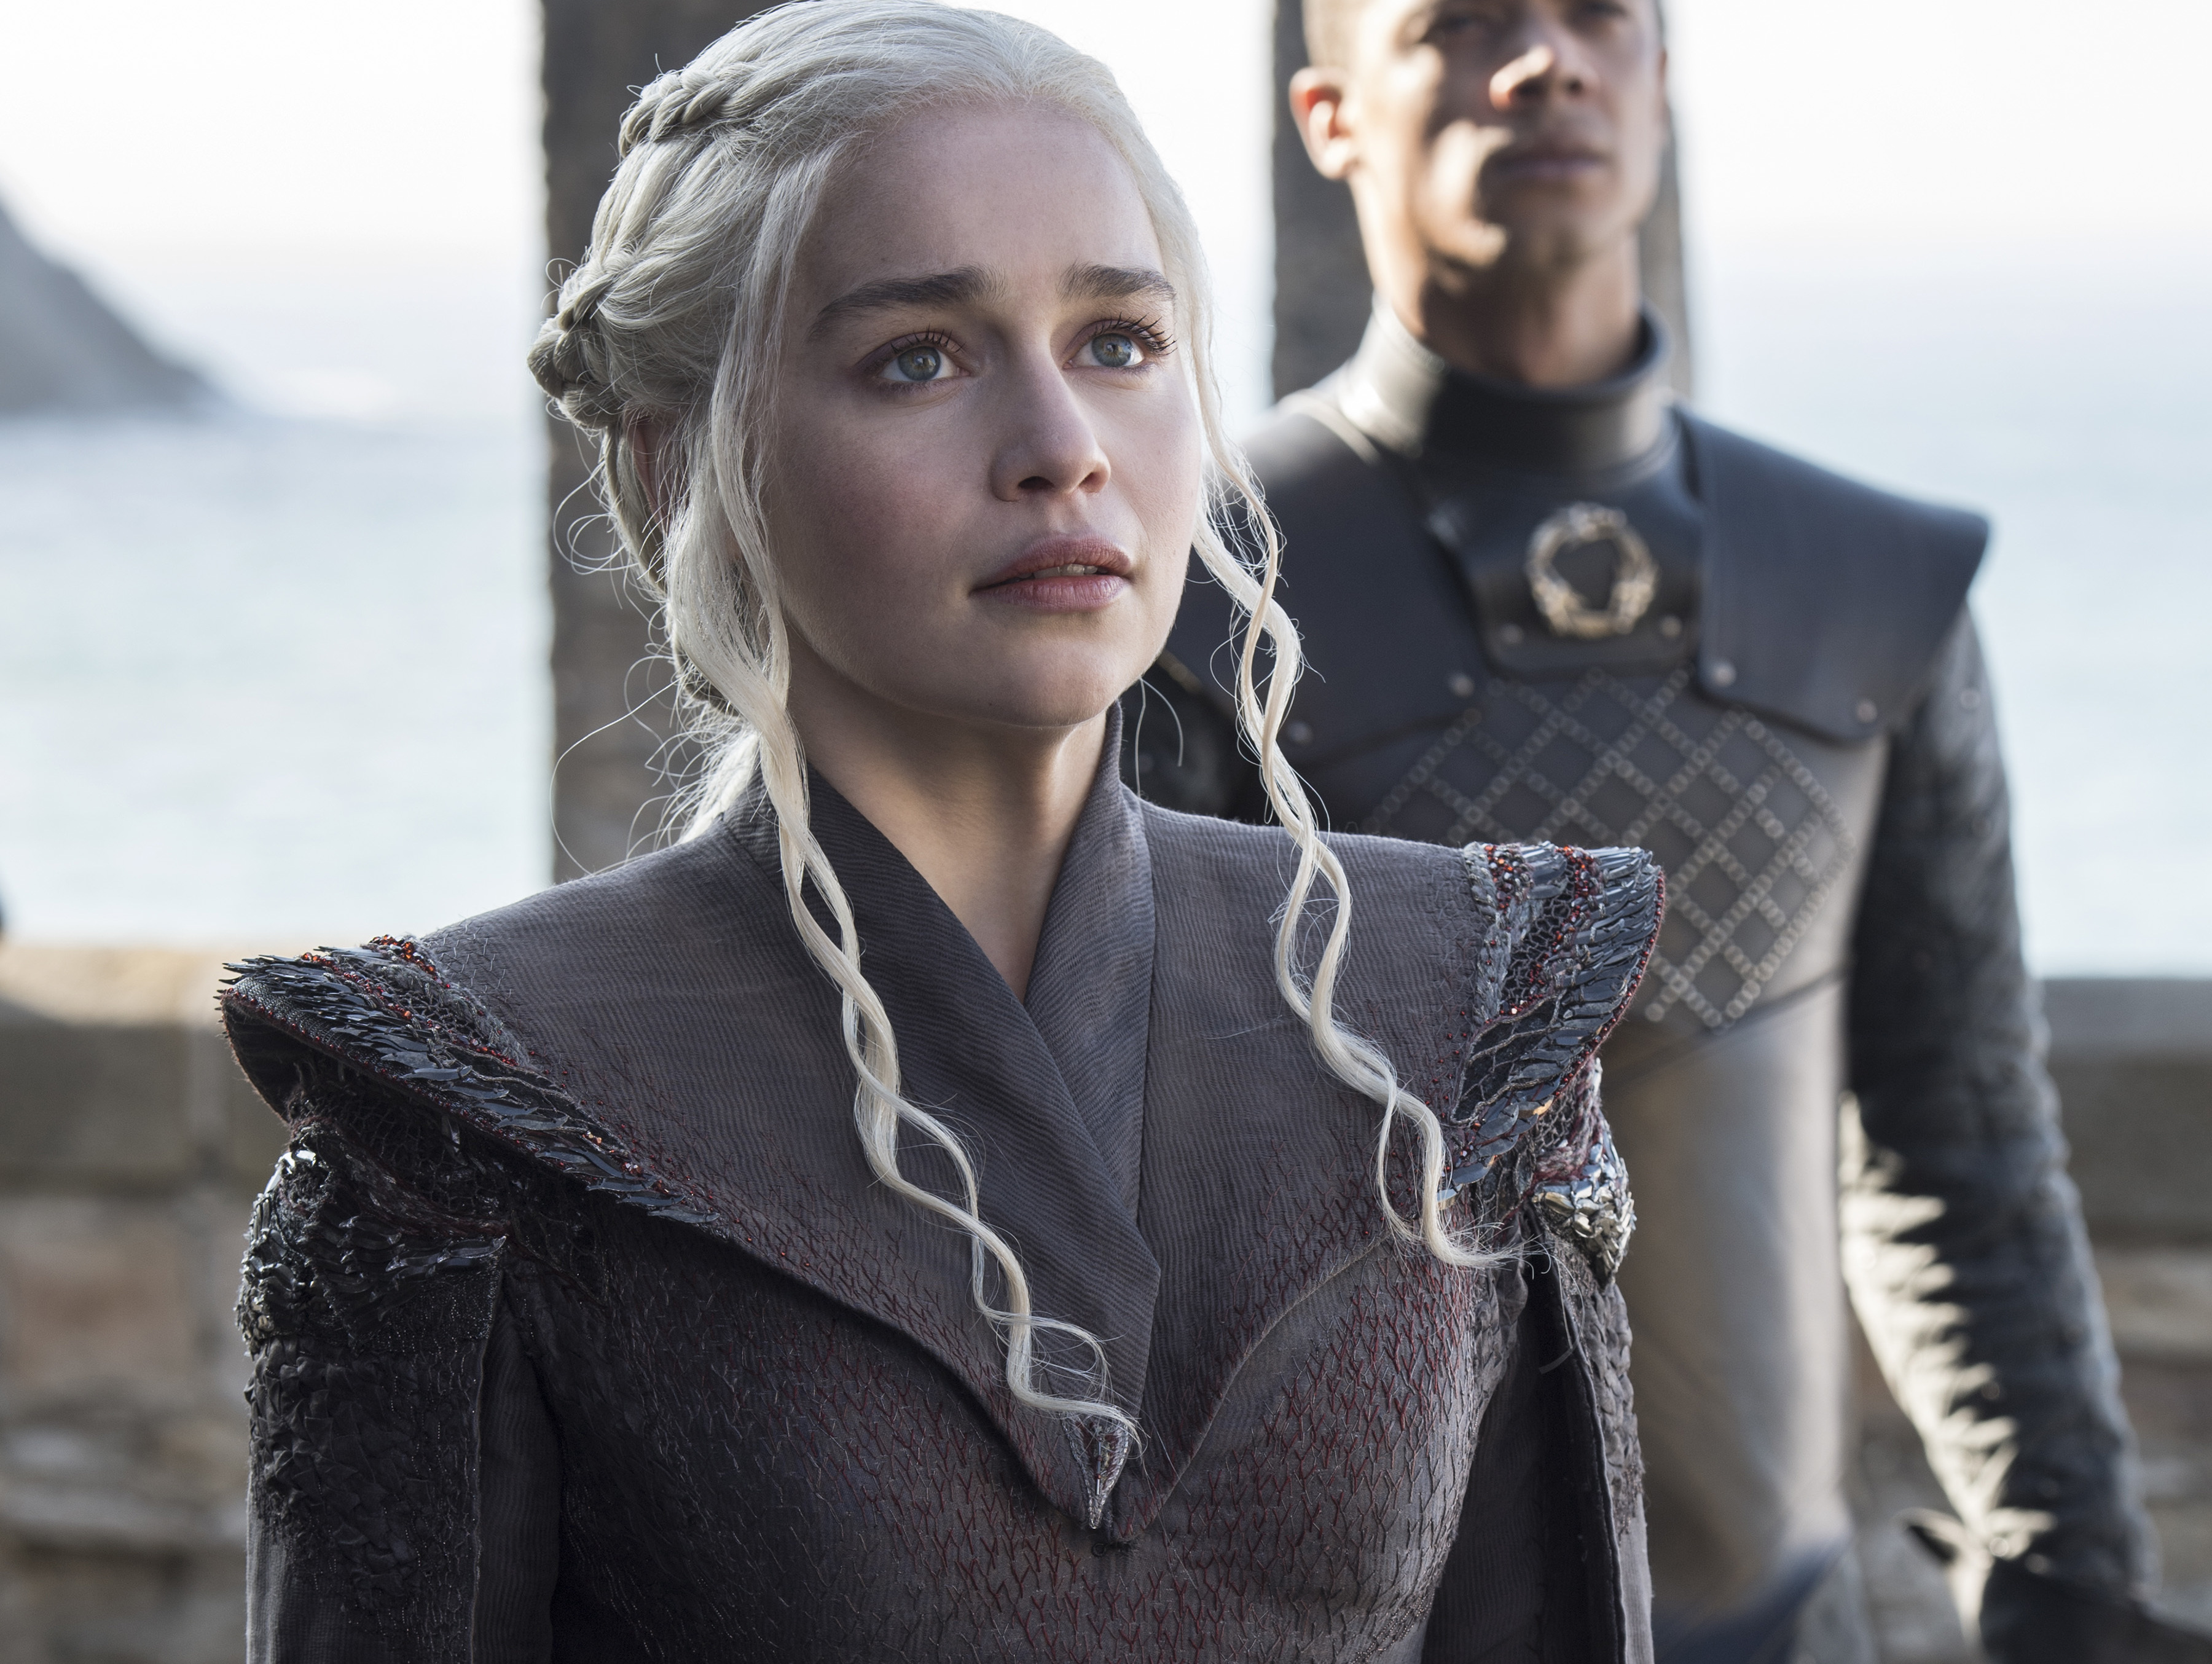 Emilia Clarke is 'annoyed' over 'GoT' nudity criticism